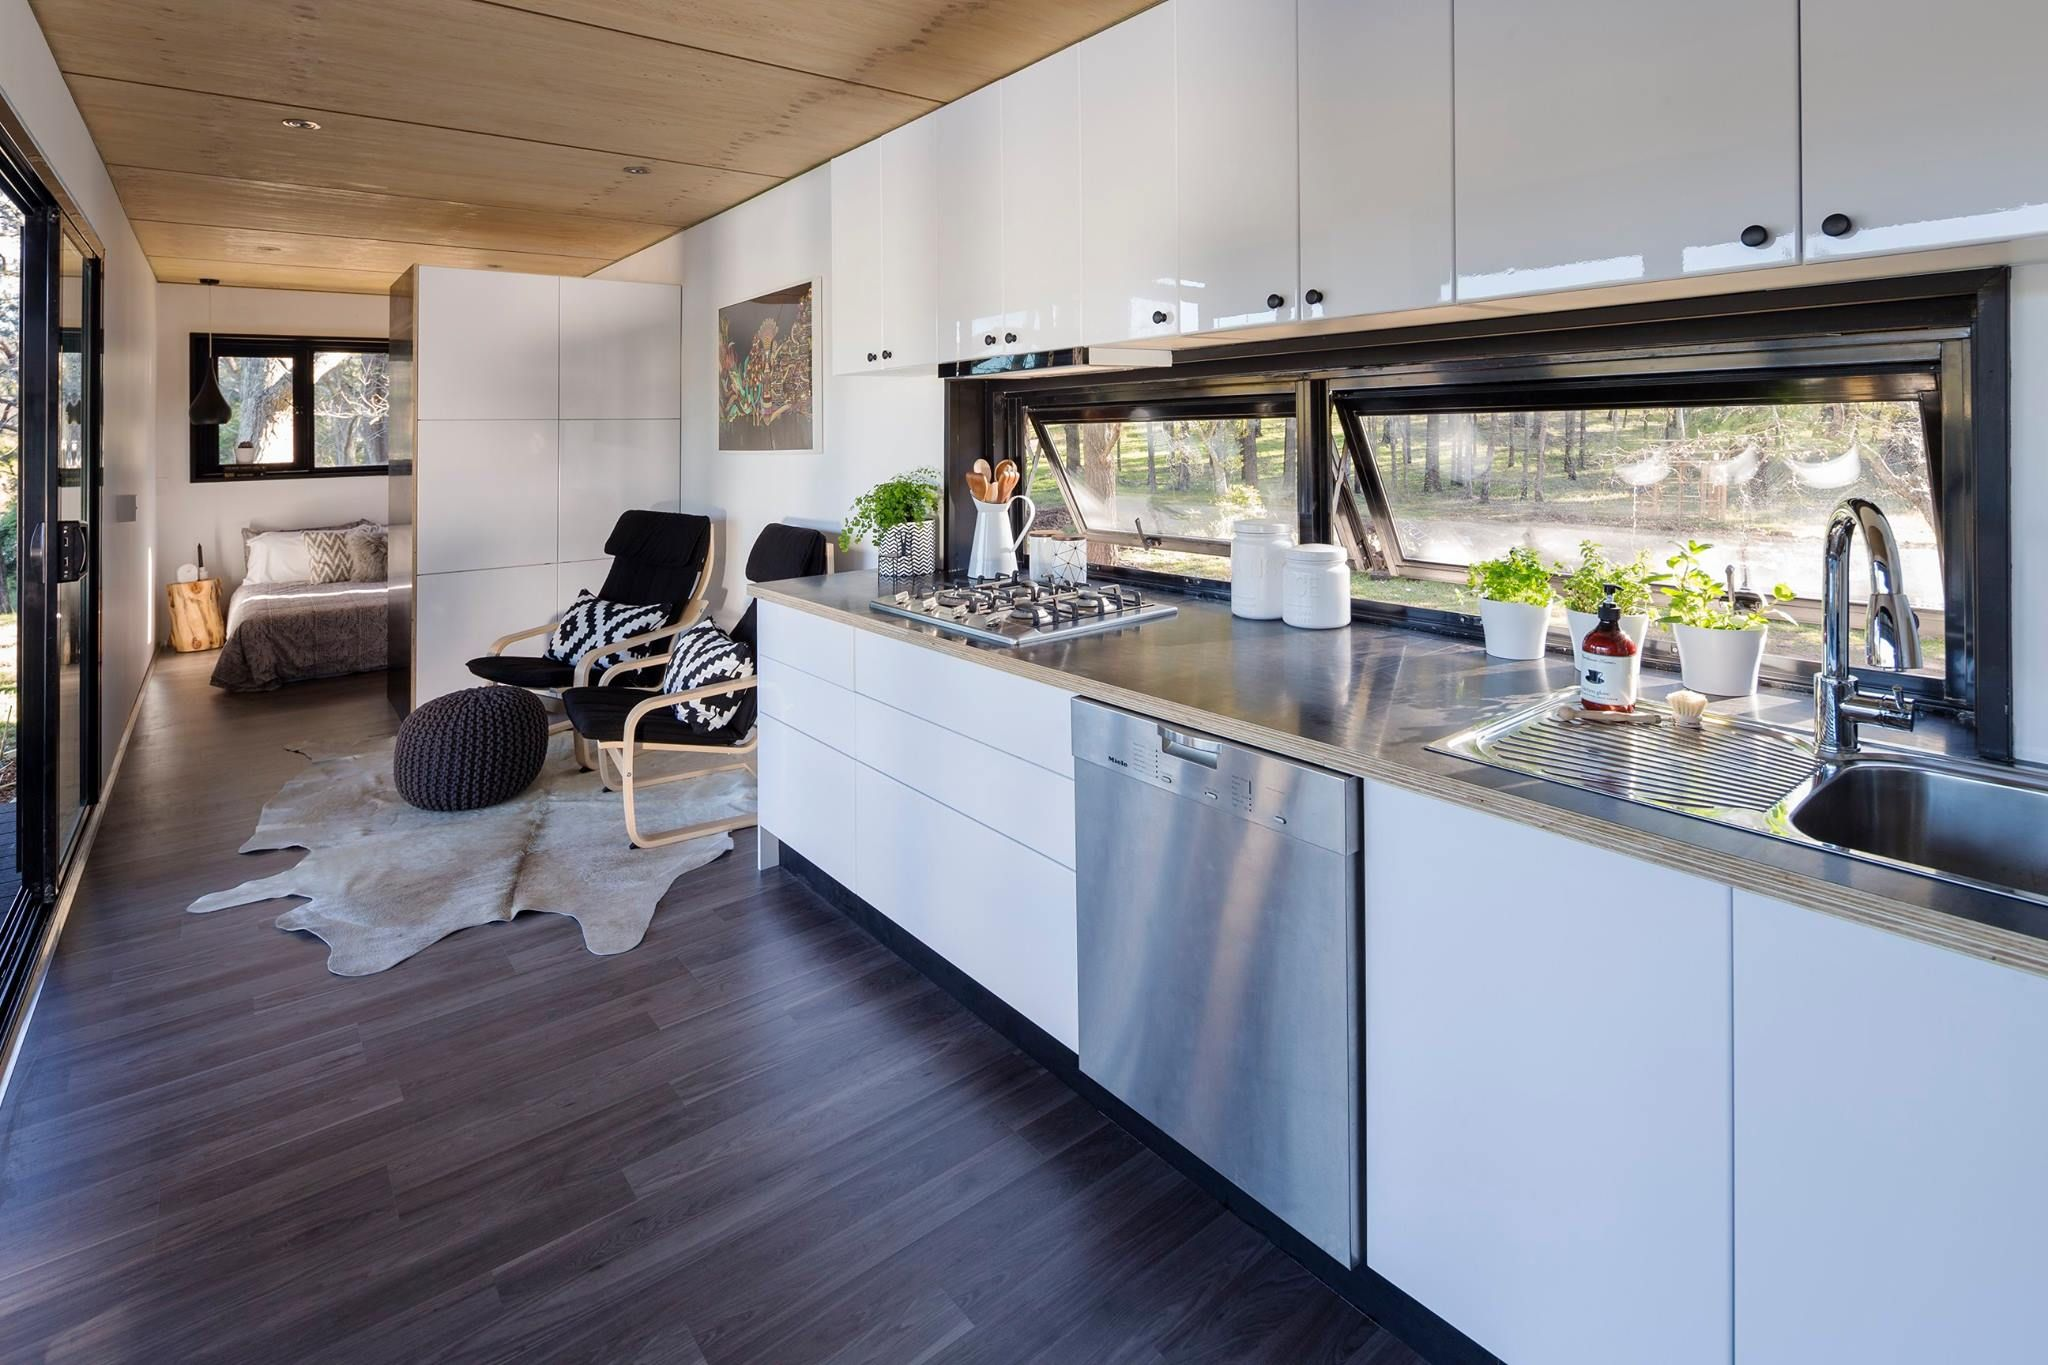 container home designers%0A Shipping container tiny home  Paring down to just what you love is very  liberating